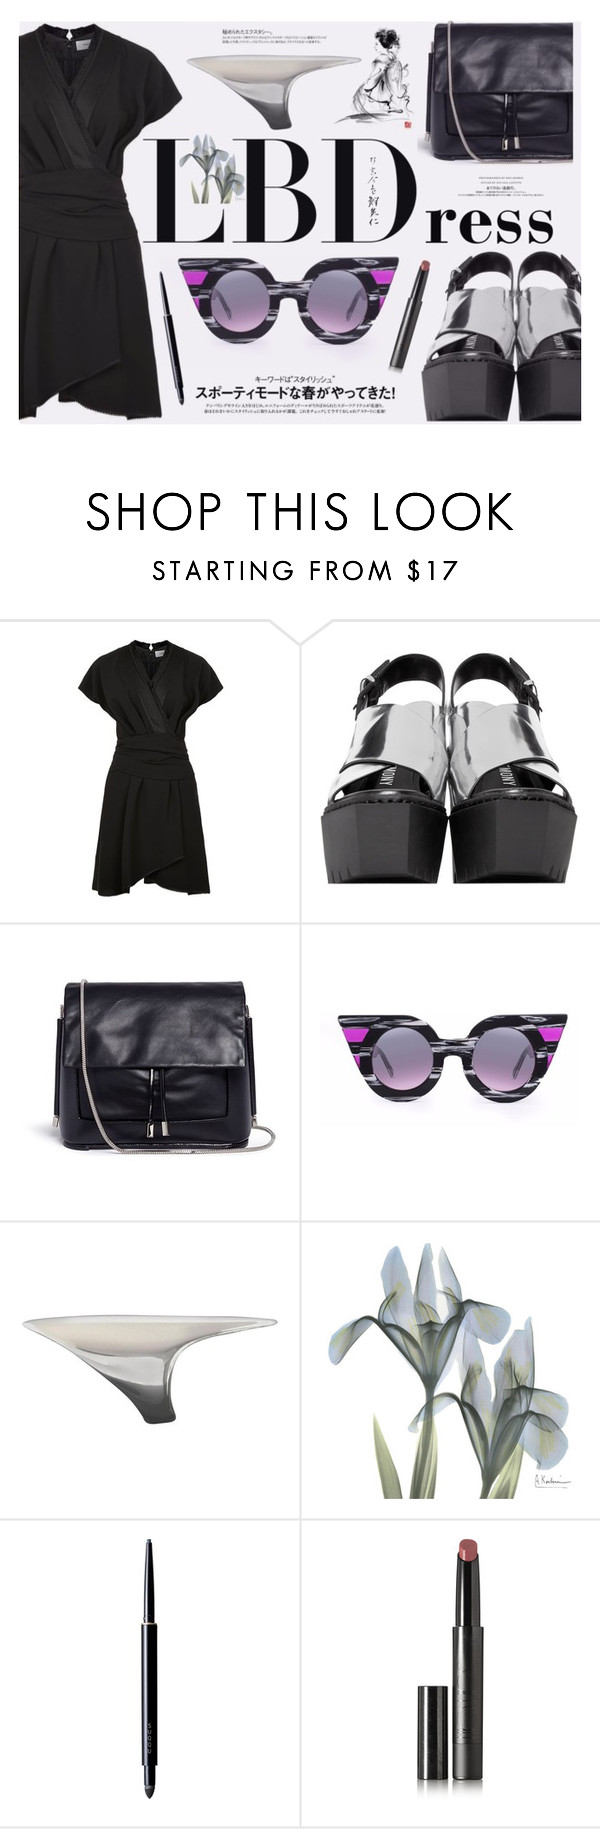 """""""Little Black Dress"""" by katarina-blagojevic ❤ liked on Polyvore featuring Carven, Opening Ceremony, 3.1 Phillip Lim, Delalle, Georg Jensen, Anja, SUQQU and Surratt"""